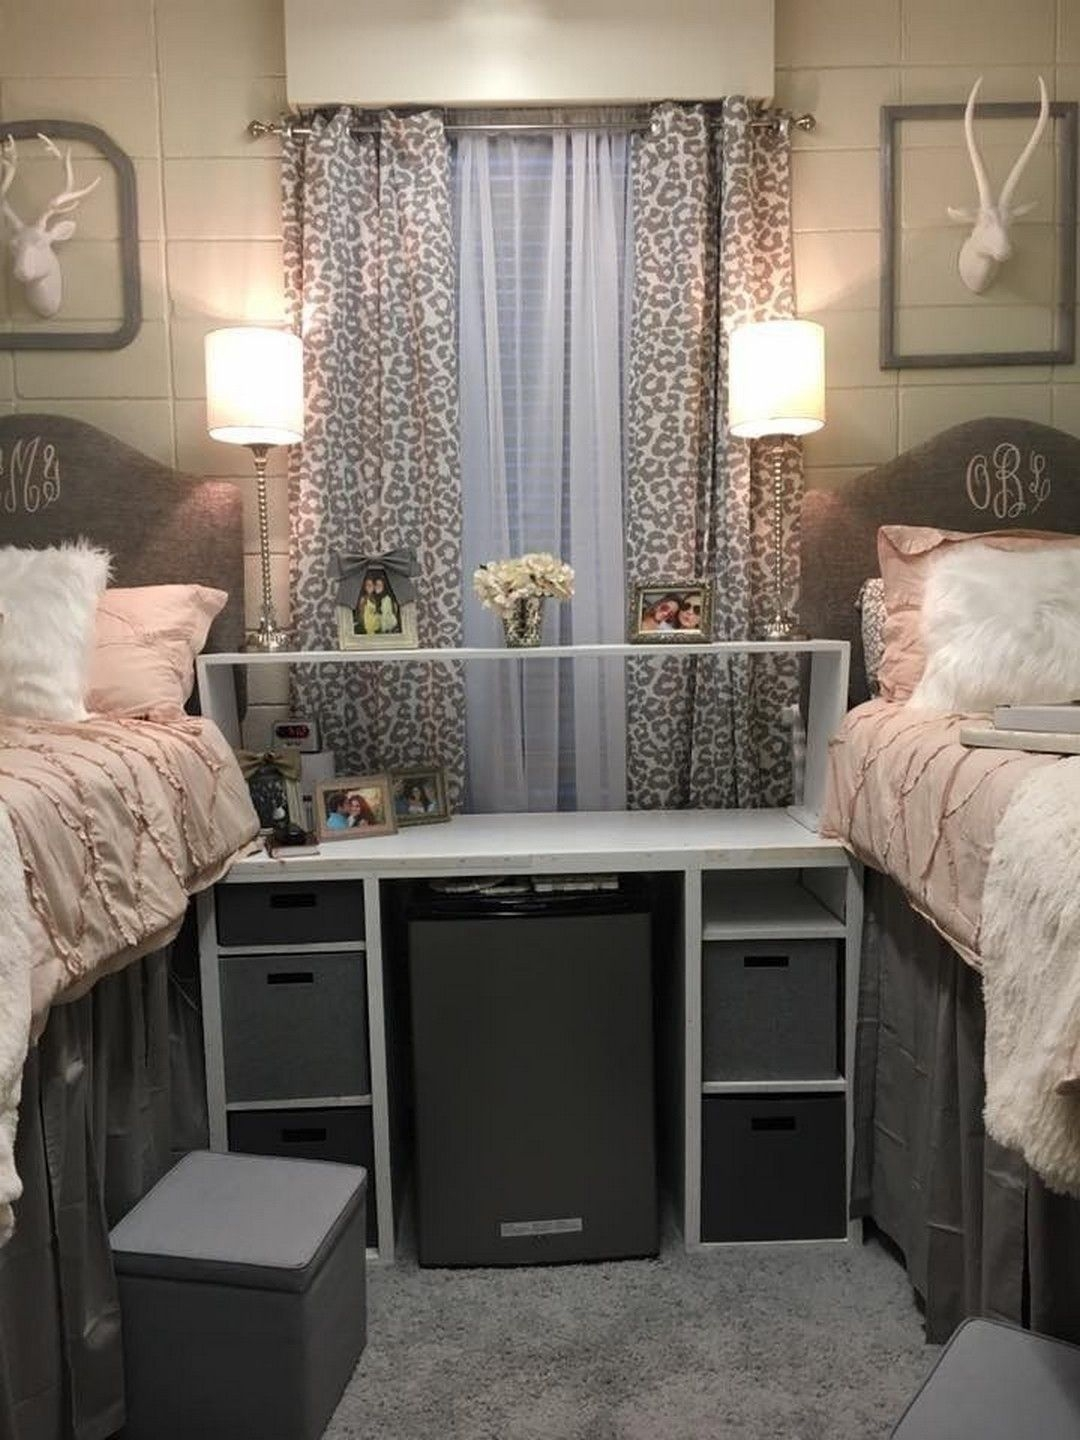 Gorgeous Dorm Decorating Ideas for Girls On Decorative 20 Cute Dorm Room Ideas that You Need to Copy Right now On Dorm Decorating Ideas for Girls